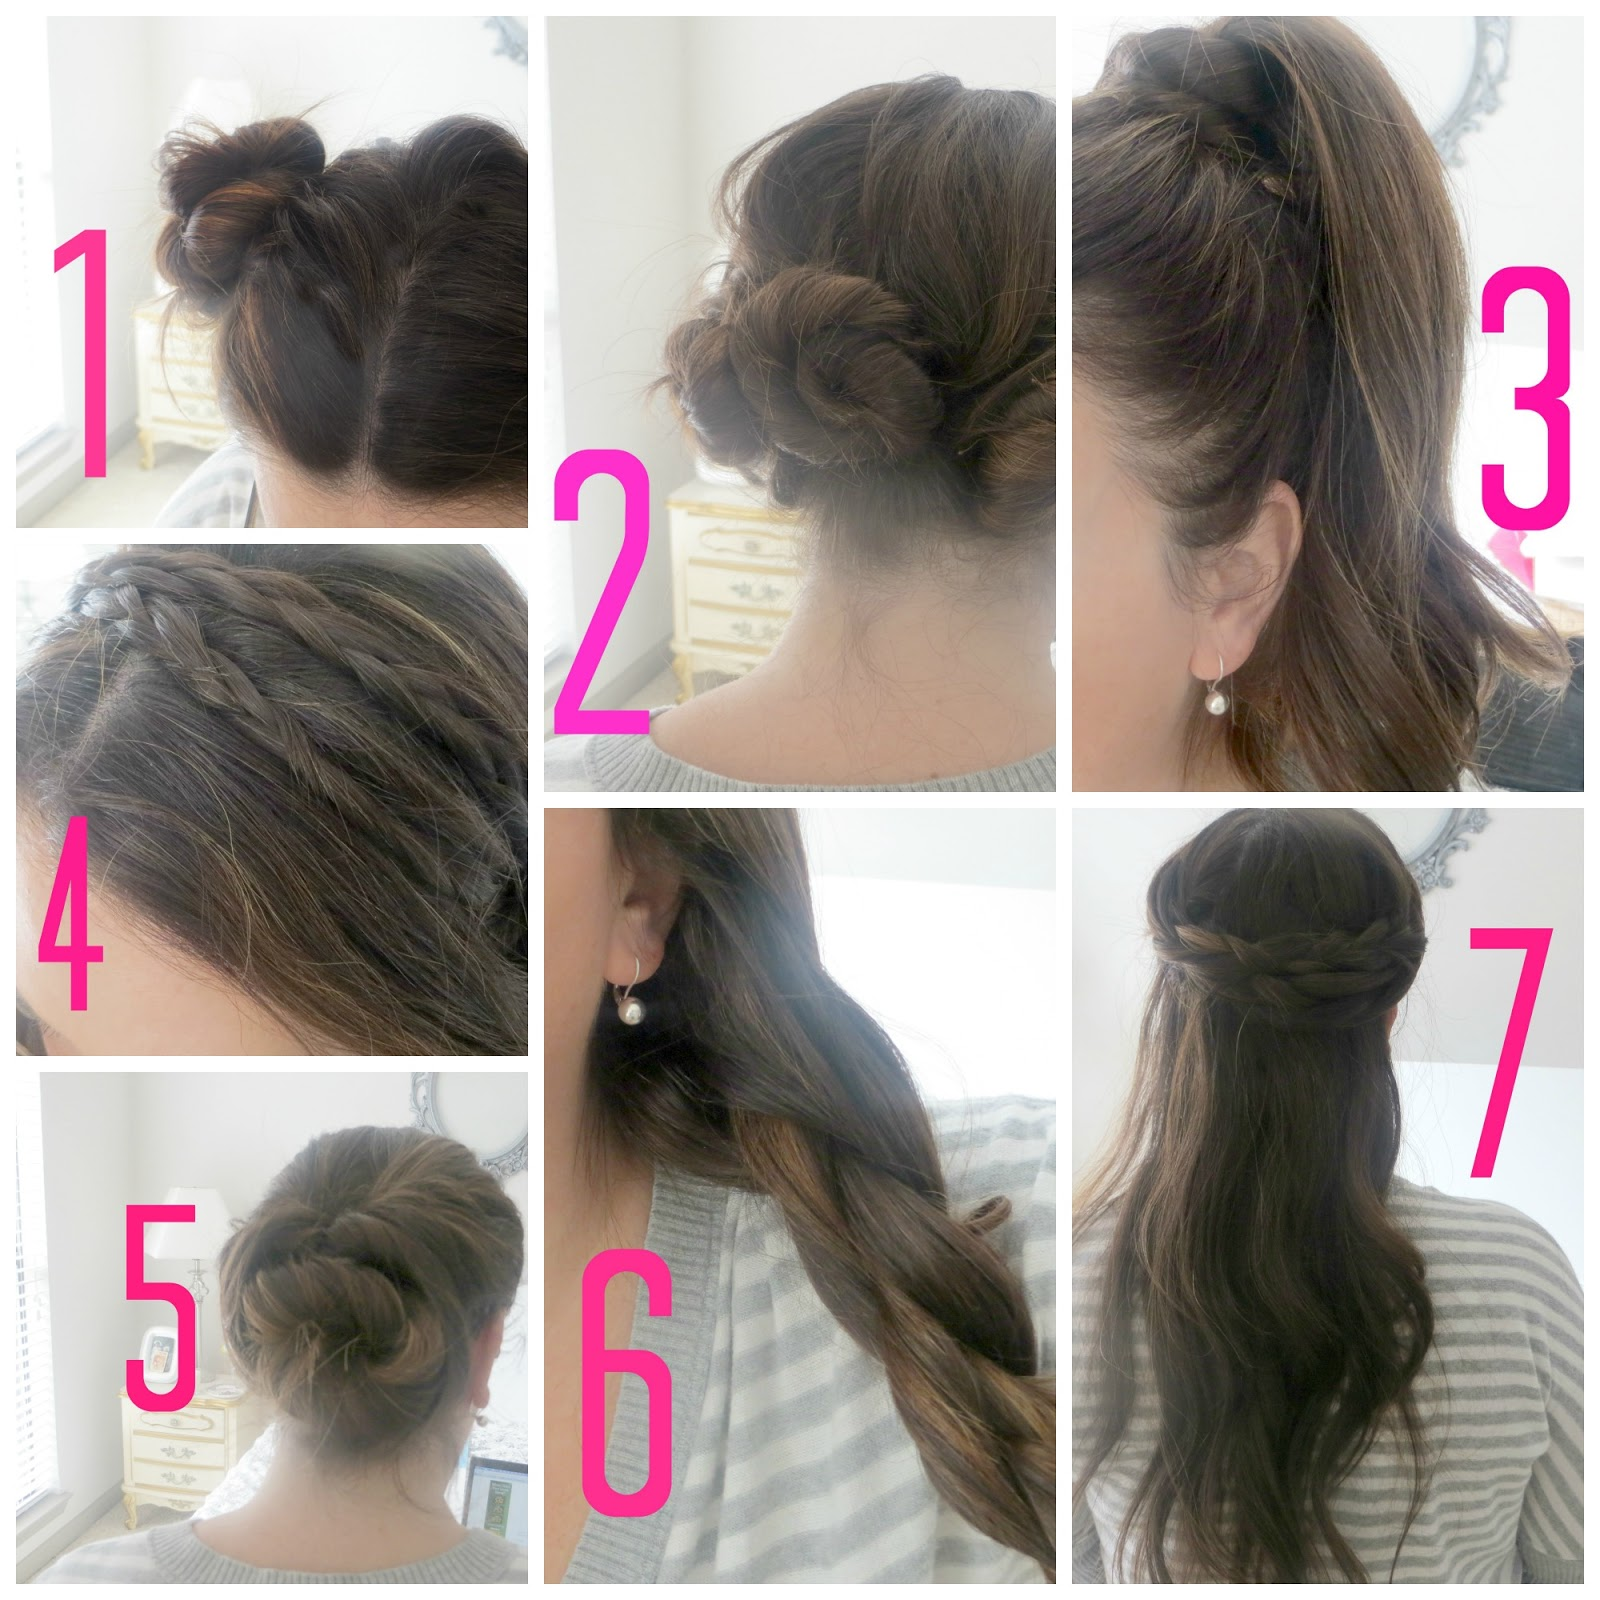 Super Hairstyles For School Step By Step Inspiration Heleenvanoord Com Hairstyles For Women Draintrainus